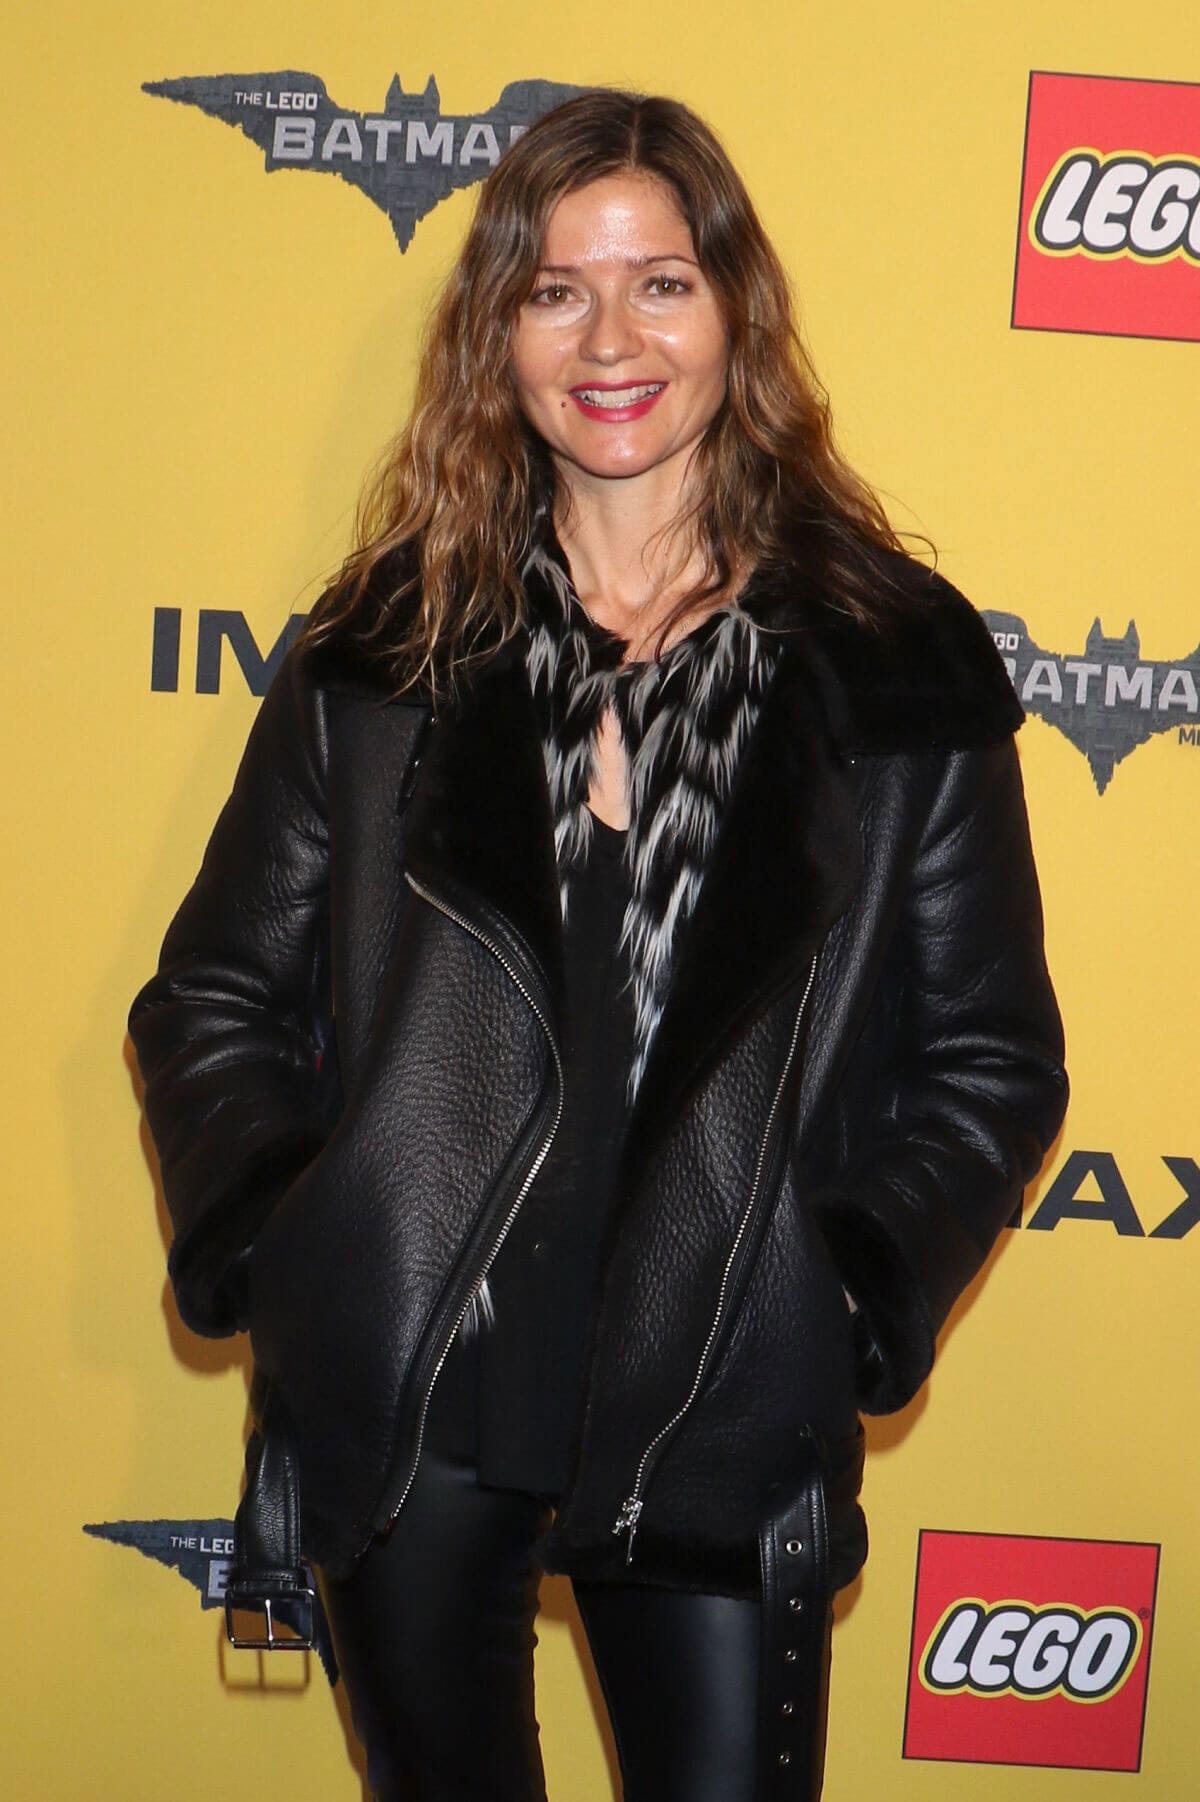 Jill Hennessy at an event for The Lego Batman Movie (2017)